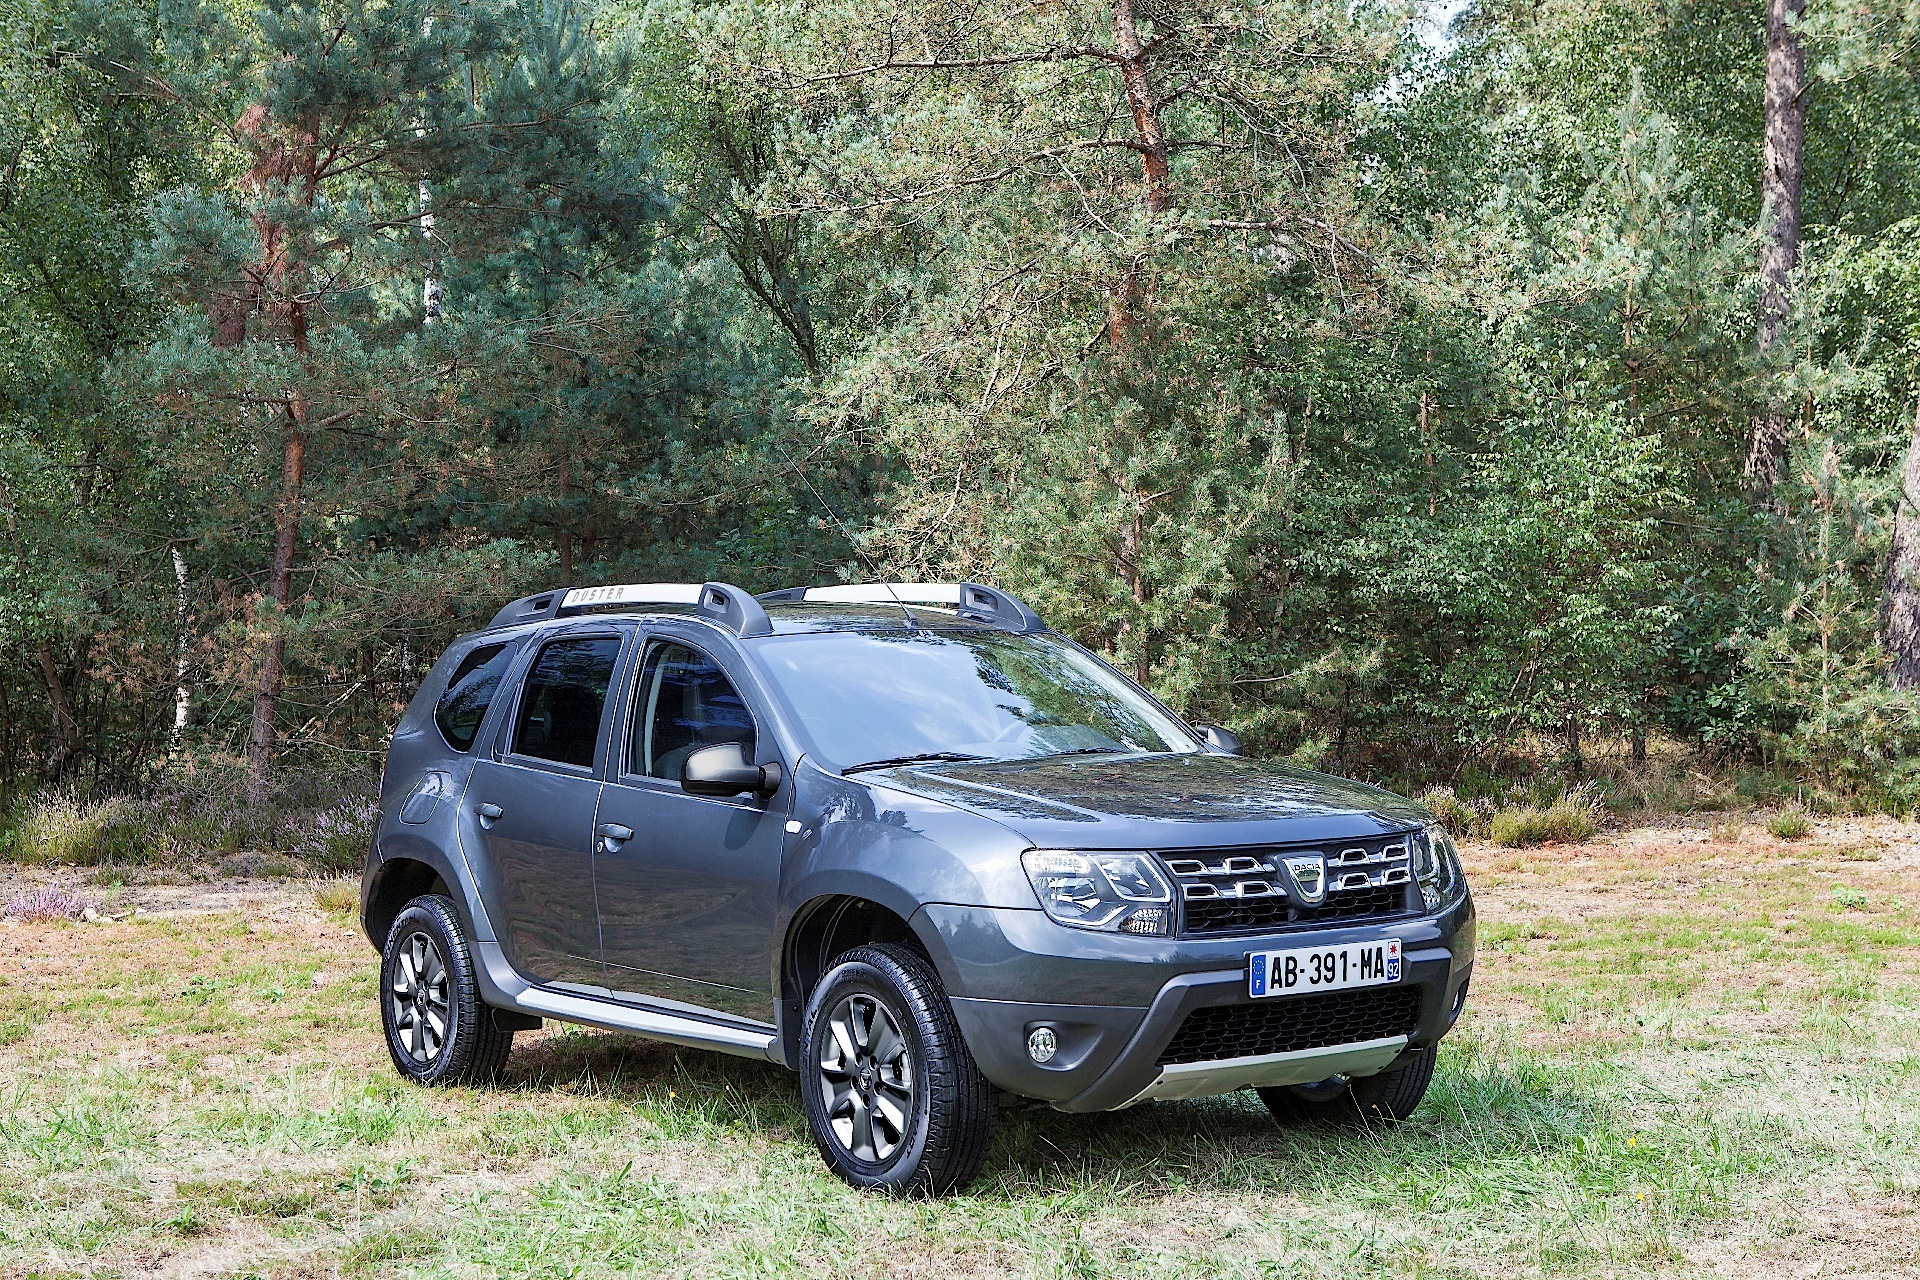 dacia duster specs 2013 2014 2015 2016 2017 autoevolution. Black Bedroom Furniture Sets. Home Design Ideas